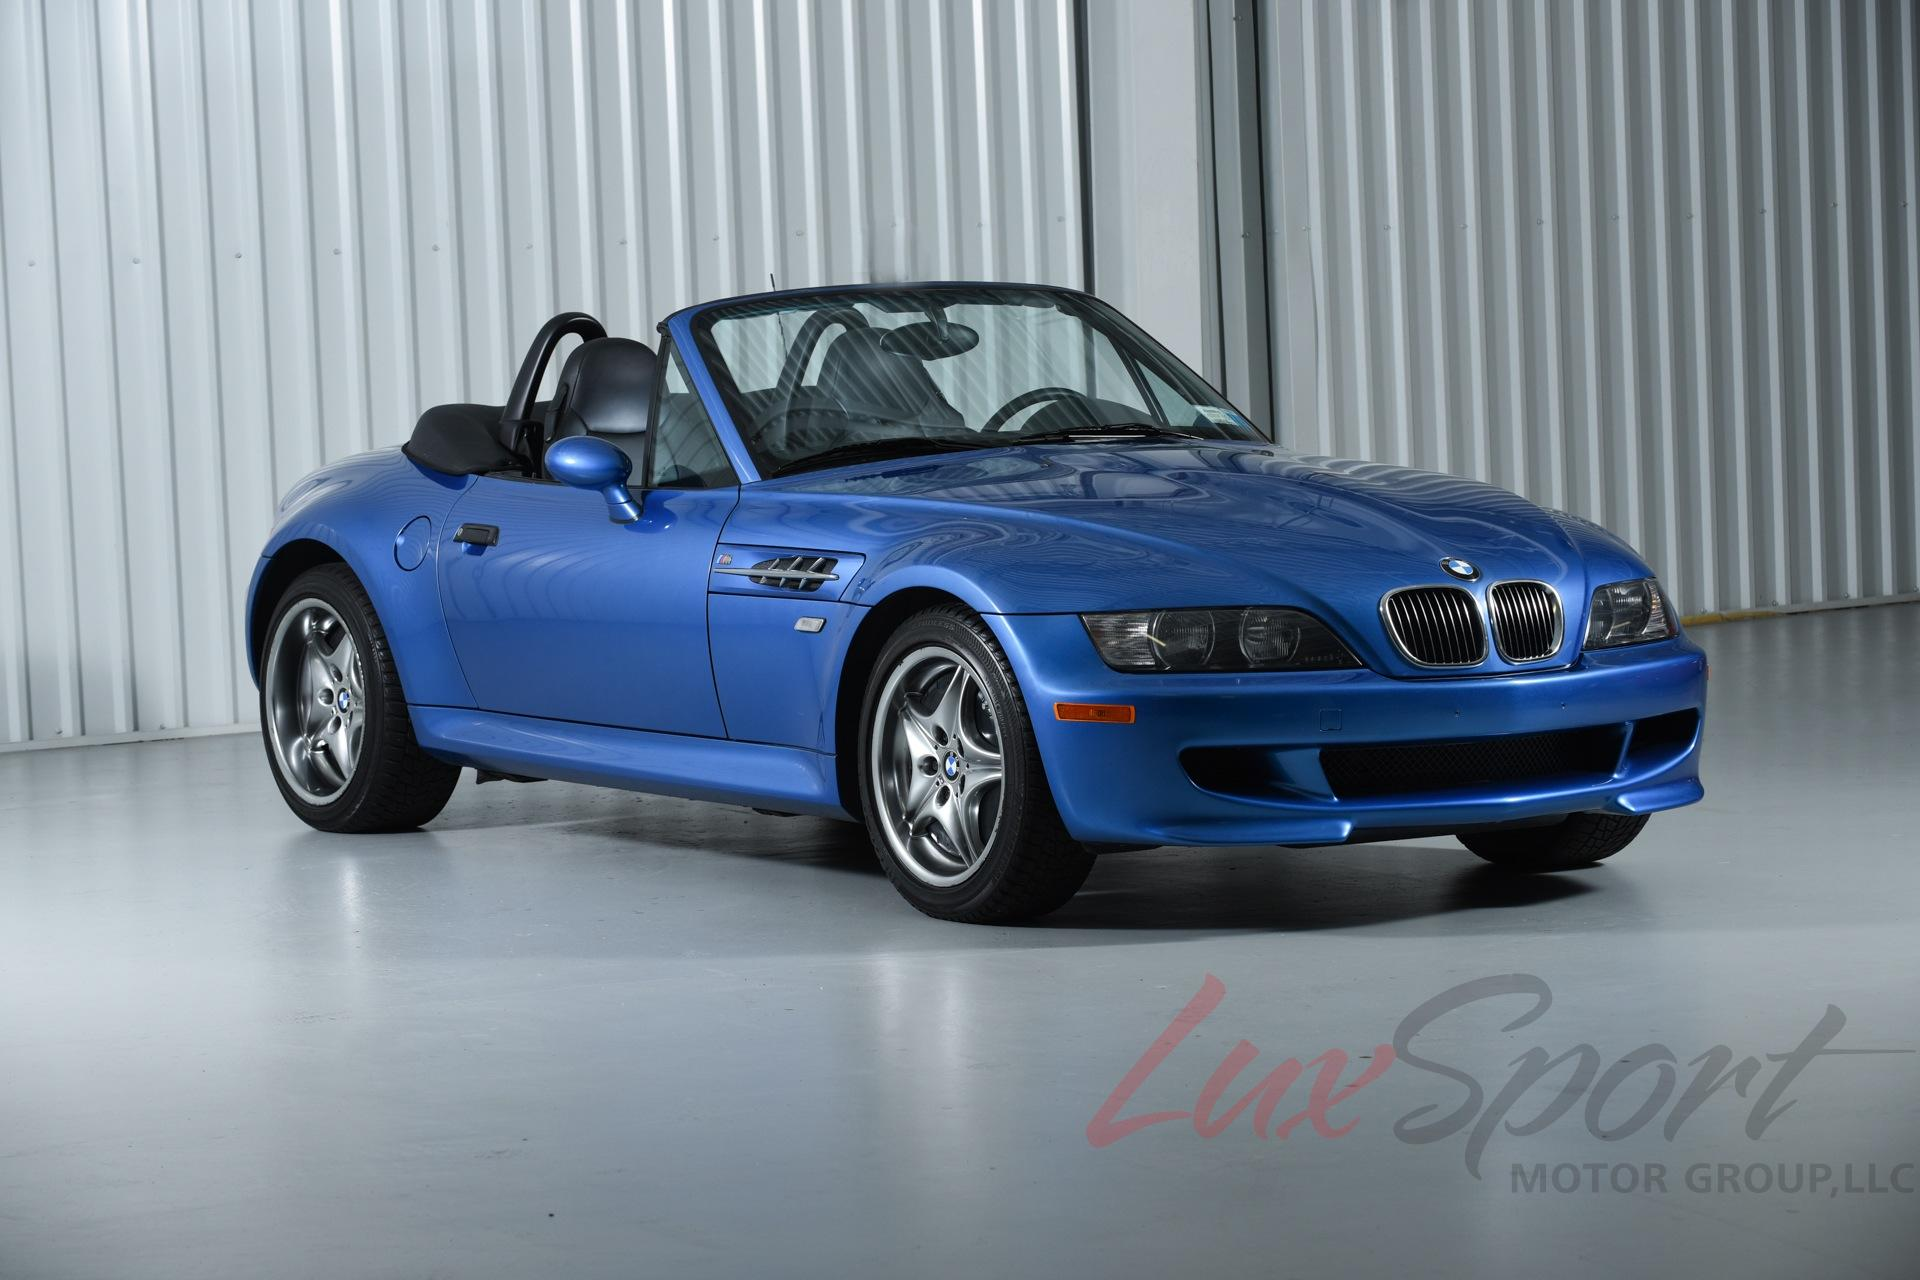 2001 bmw m roadster convertible stock 2001107a for sale near new hyde park ny ny bmw dealer. Black Bedroom Furniture Sets. Home Design Ideas